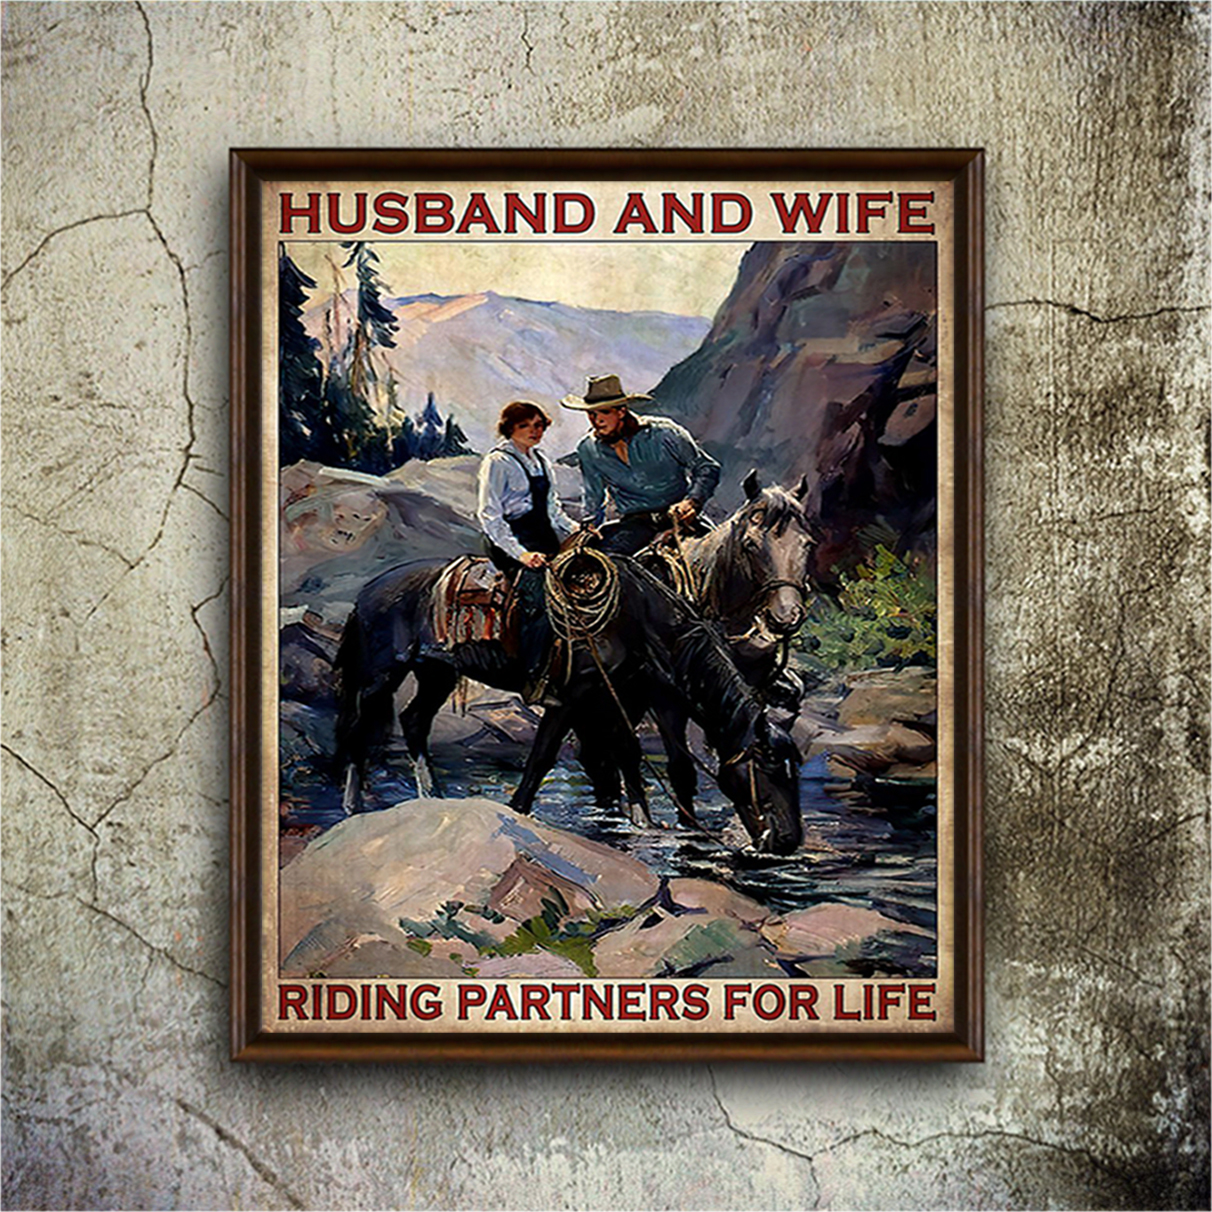 Husband and wife riding partners for life poster A3